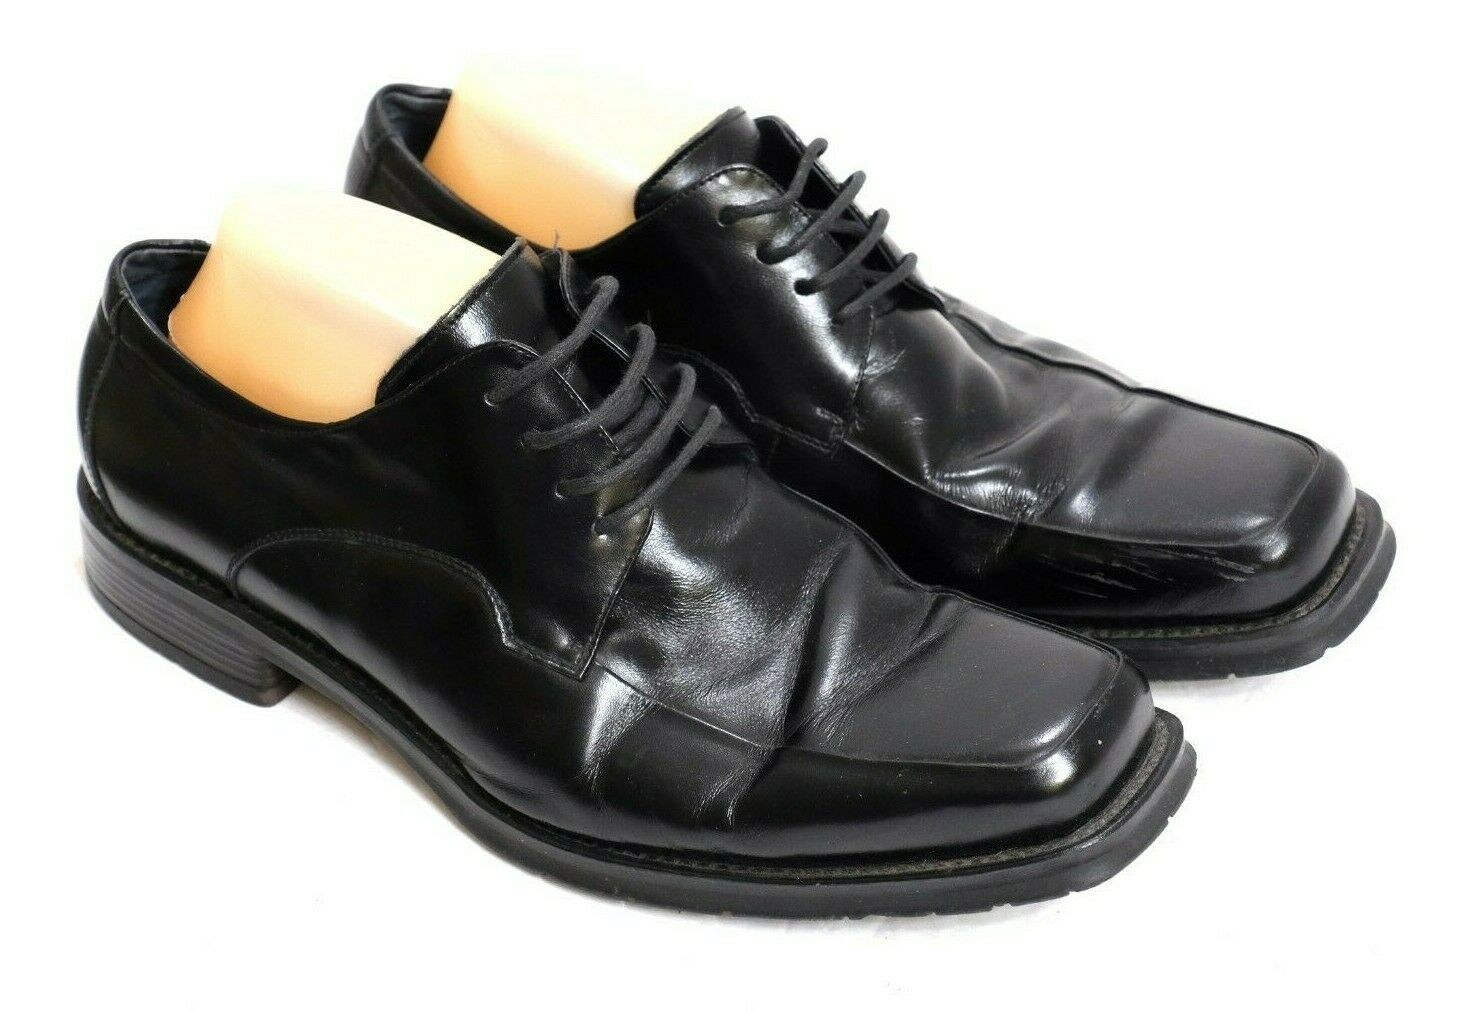 VGUC Bed   Stu Men's Size 10E Handsome Black Leather Apron Toe Lace-Up Oxfords